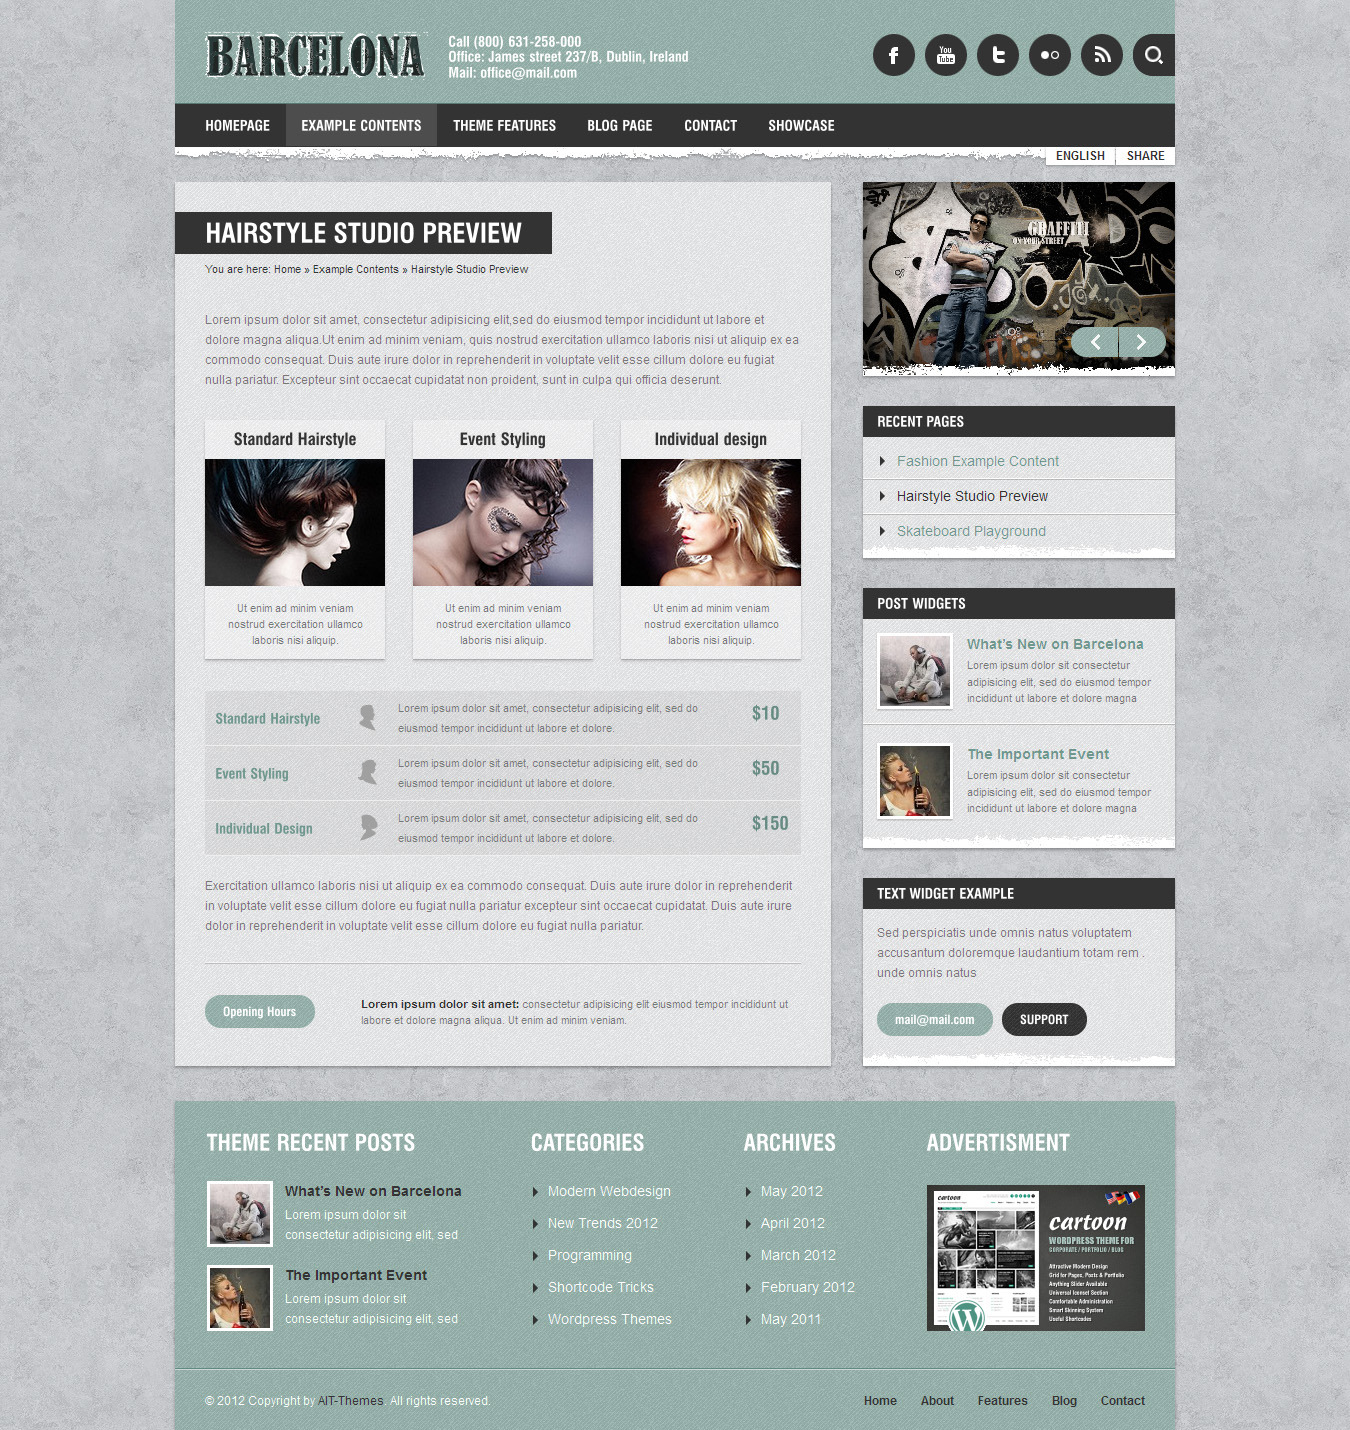 Barcelona: Customizable Universal Wordpress Theme